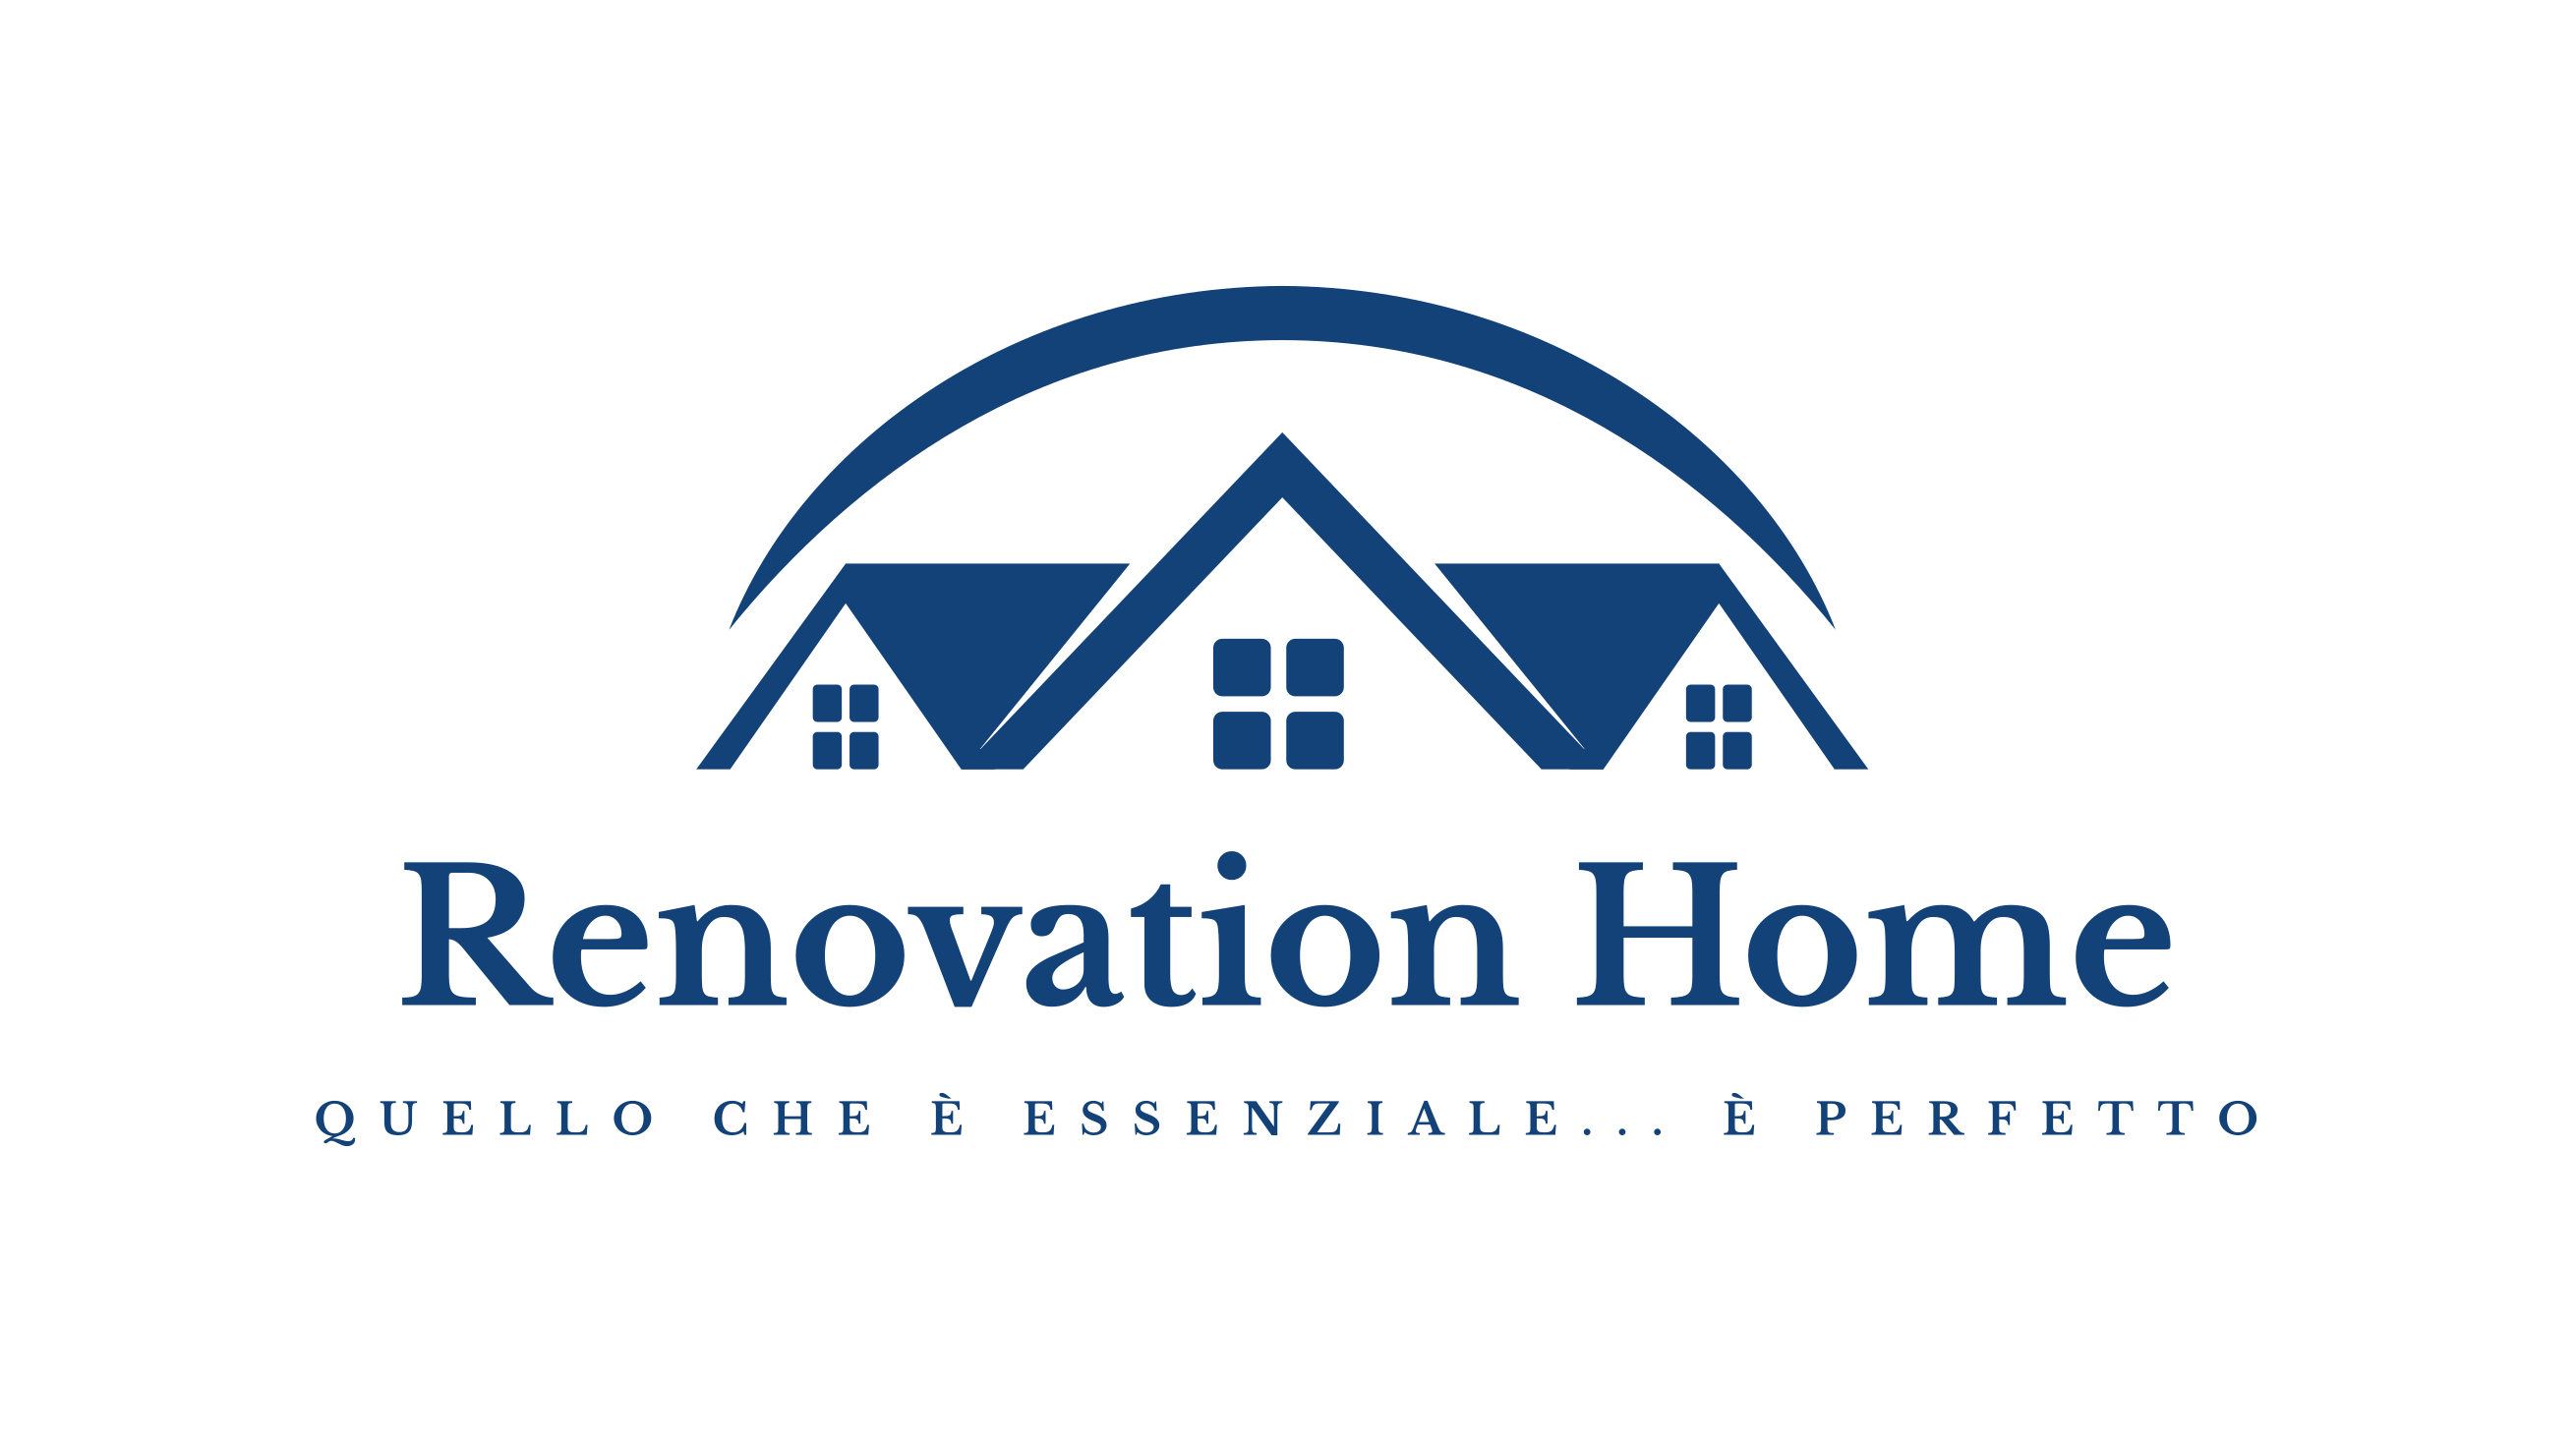 Renovation Home